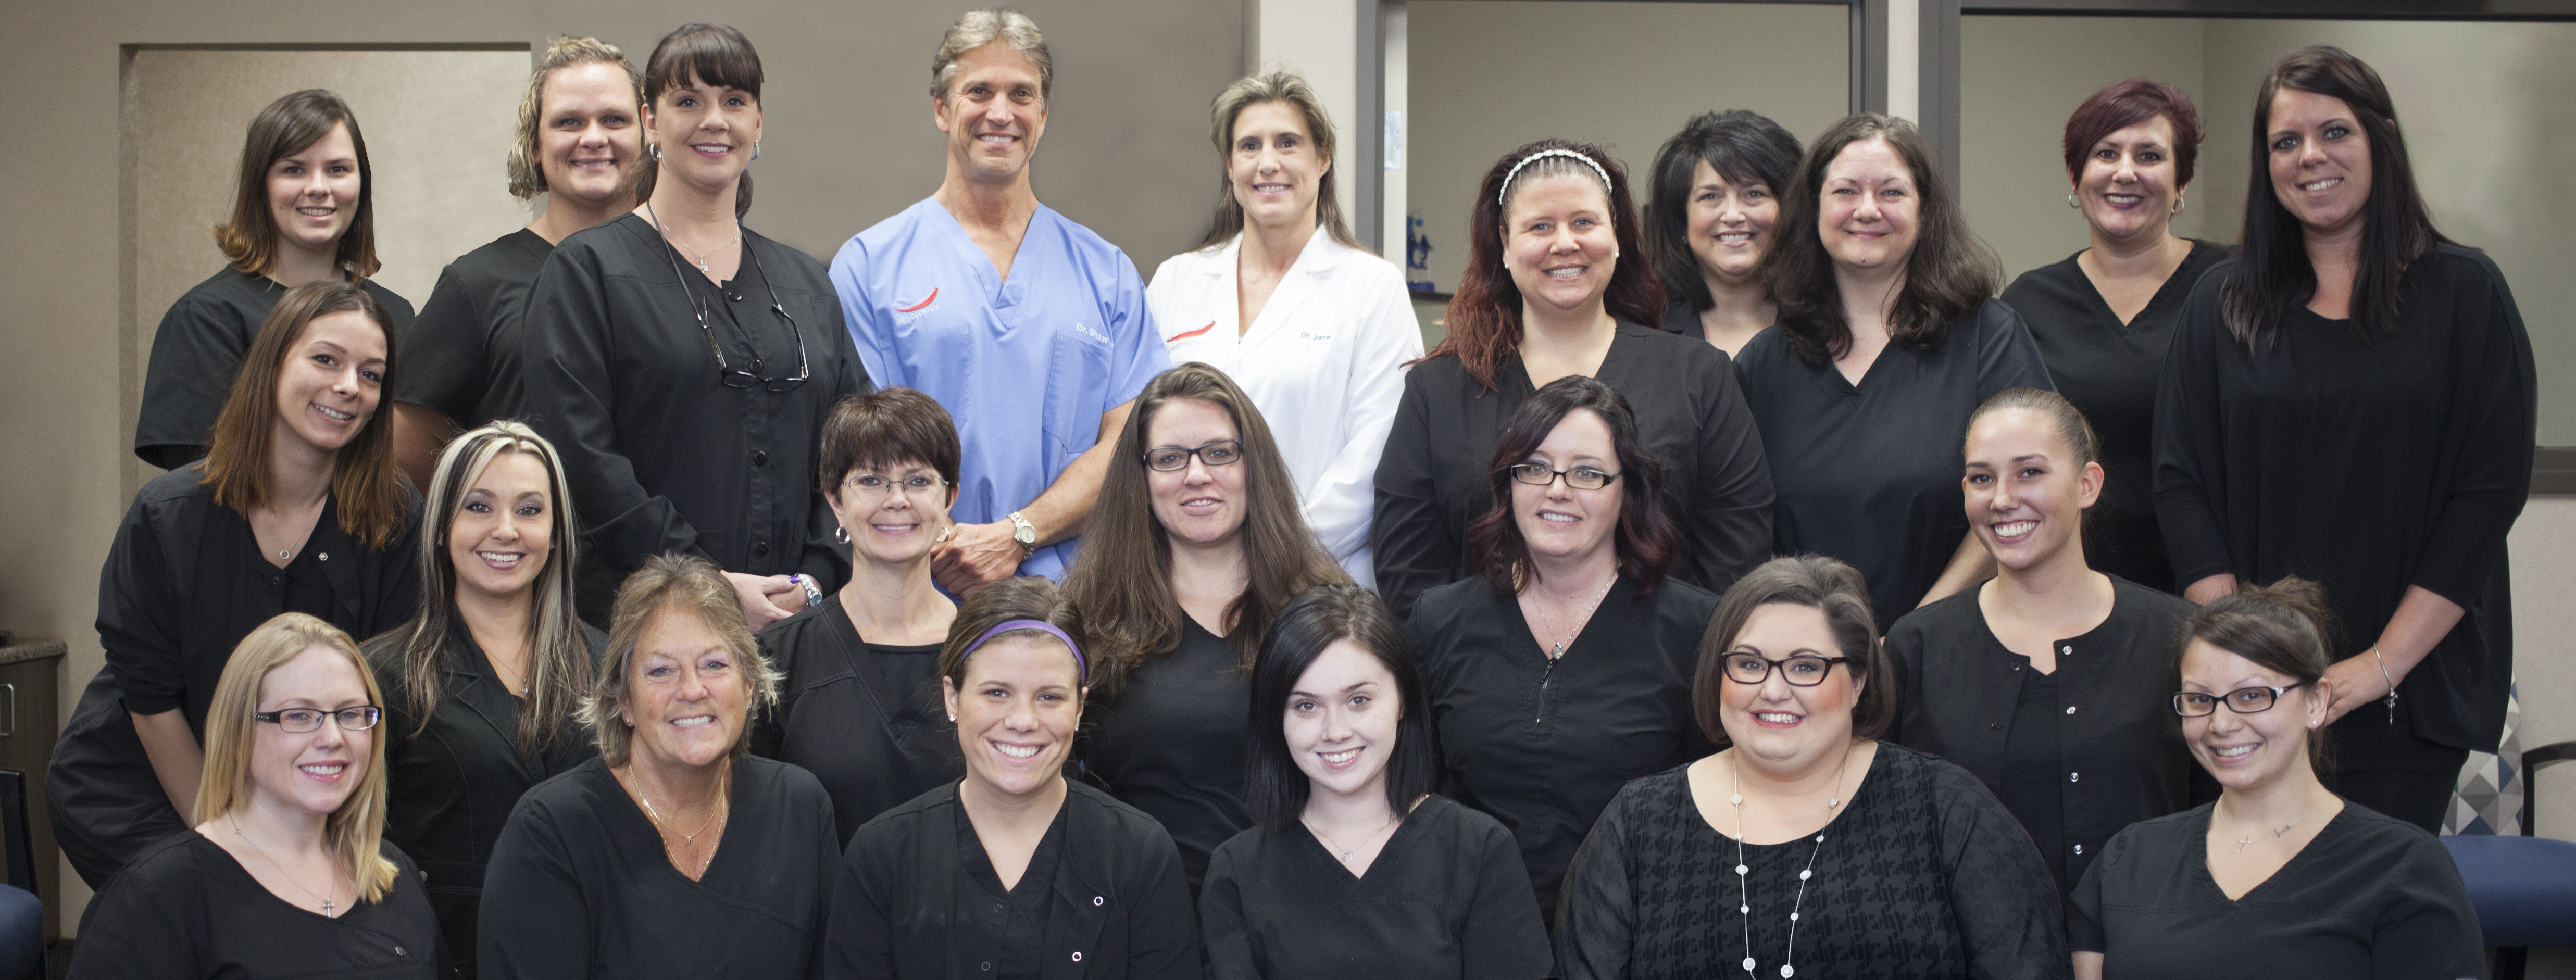 The Big Smile Orthodontics | Orthodontists in 33627 Seven Mile Rd. - Livonia MI - Reviews - Photos - Phone Number